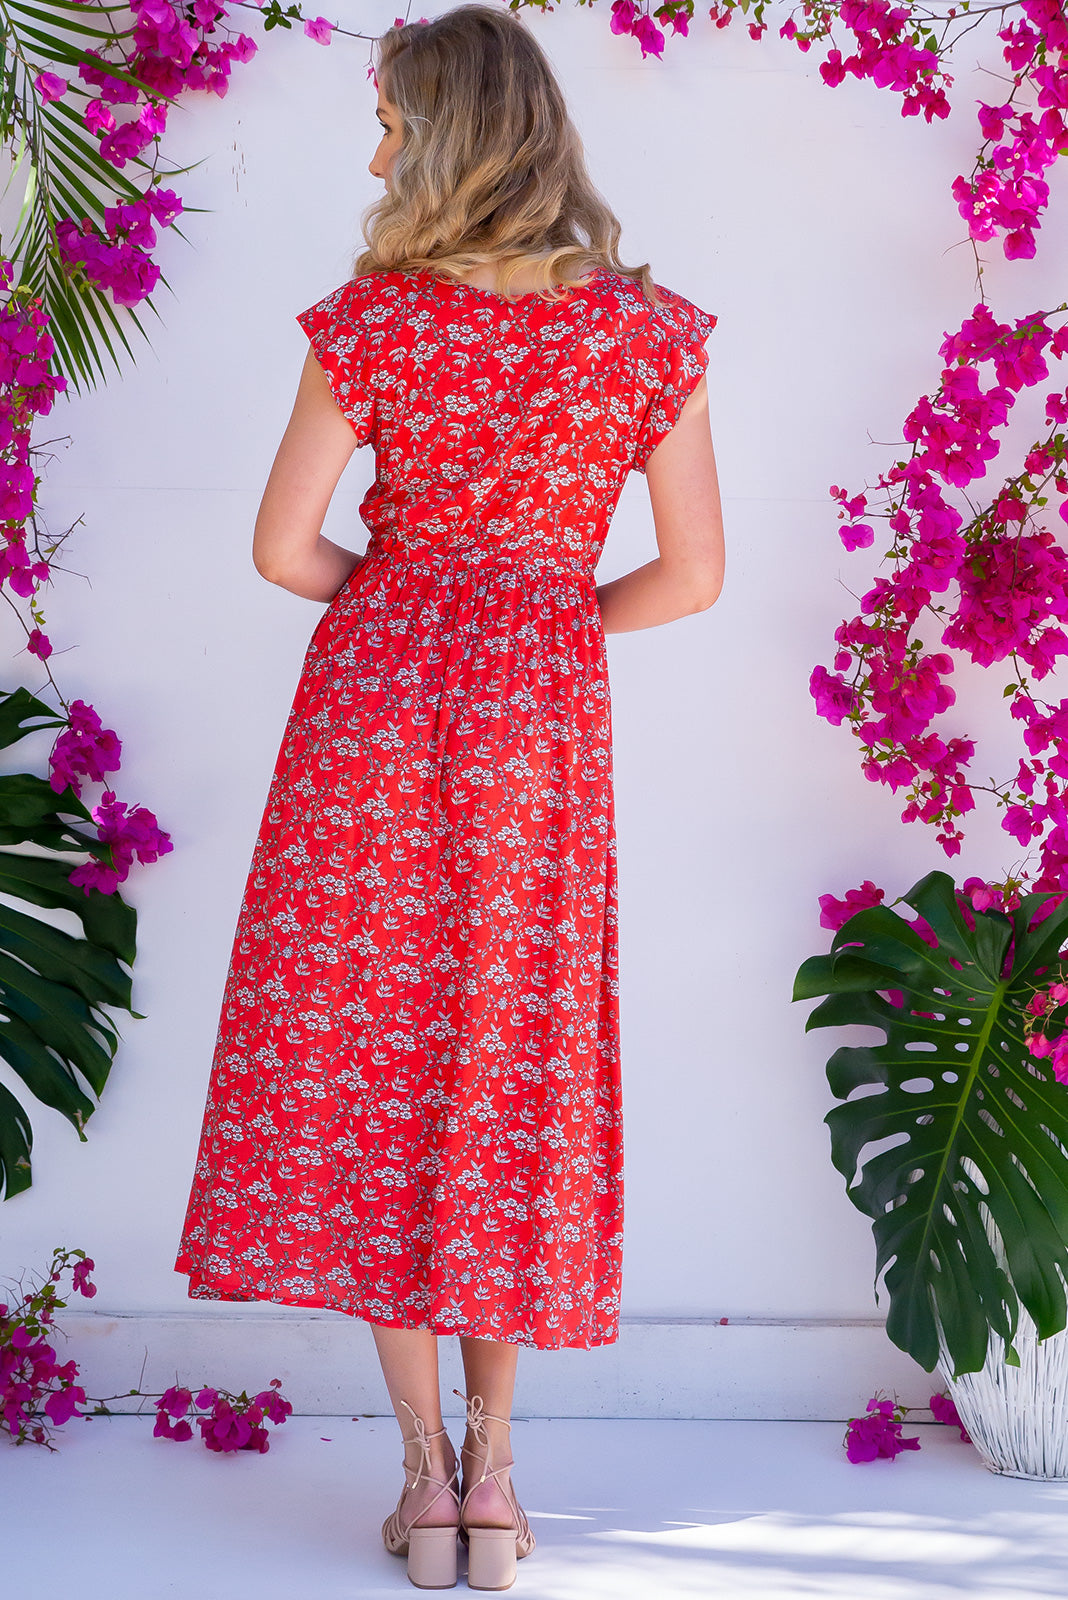 Juniper Maxi Summer Red Dress in red bohemian vintage floral rayon fabric. Includes pockets, drawstring waist, cap sleeve, functional top buttons.